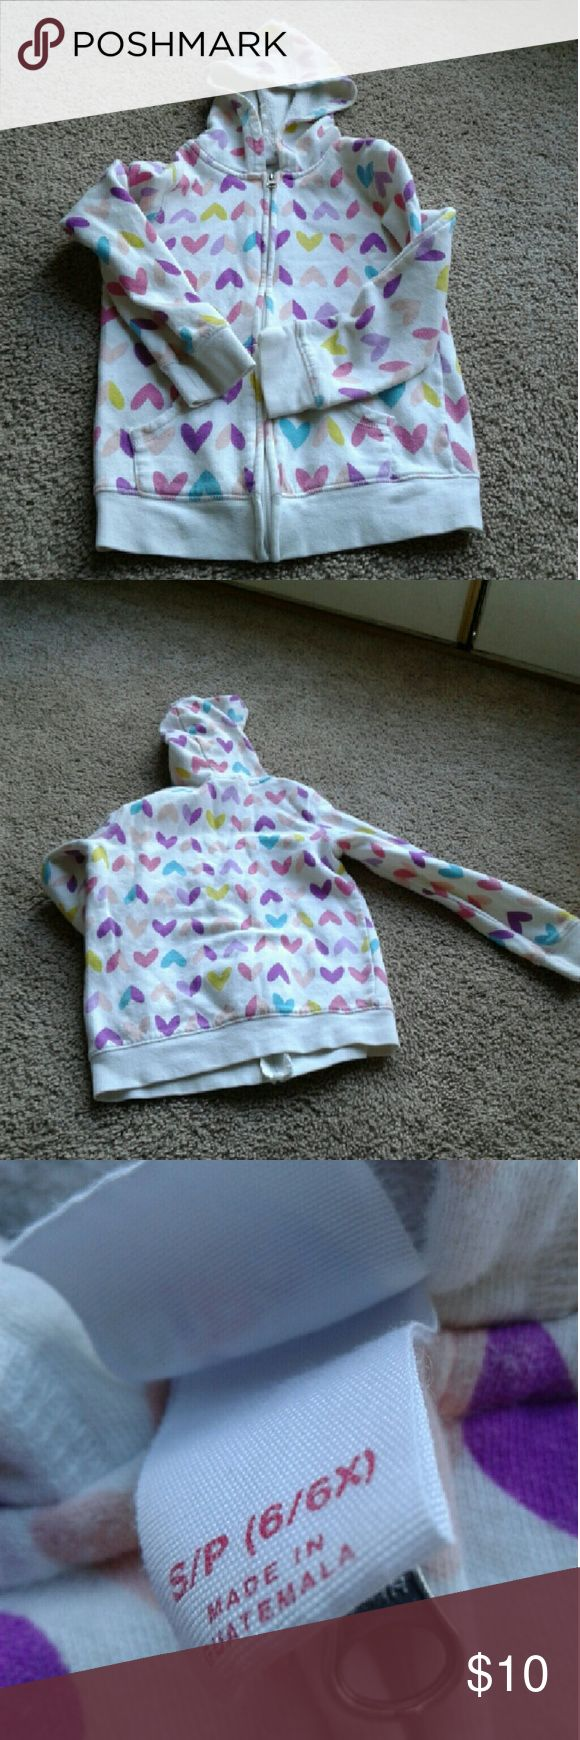 Sale ! 6 6x Zip Up Hoodie Sweater Jacket White with colorful rainbow hearts on it Size 6/6x zip up hoodie Jacket sweater hoodie Mint condition  White with purple, yellow, pink and blue hearts  I have two of these Shirts & Tops Sweatshirts & Hoodies